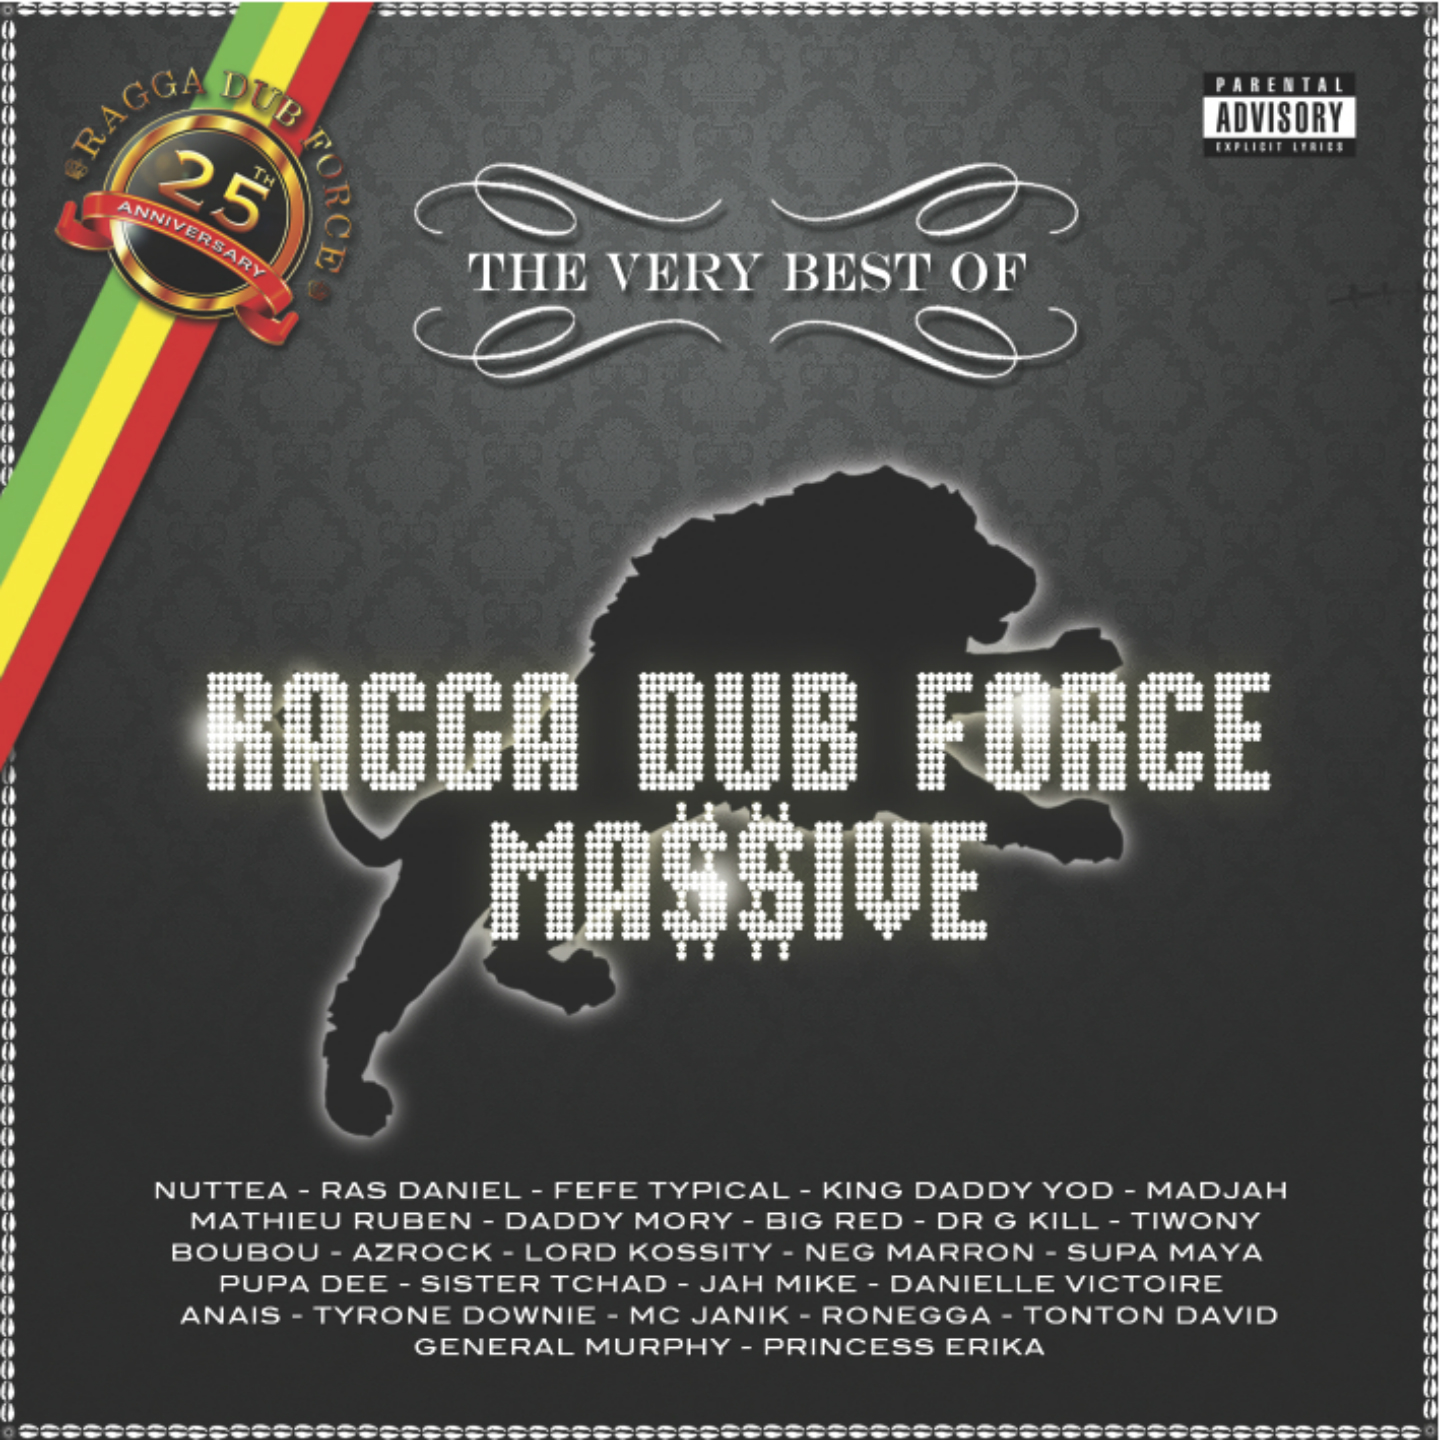 The very best of RDF